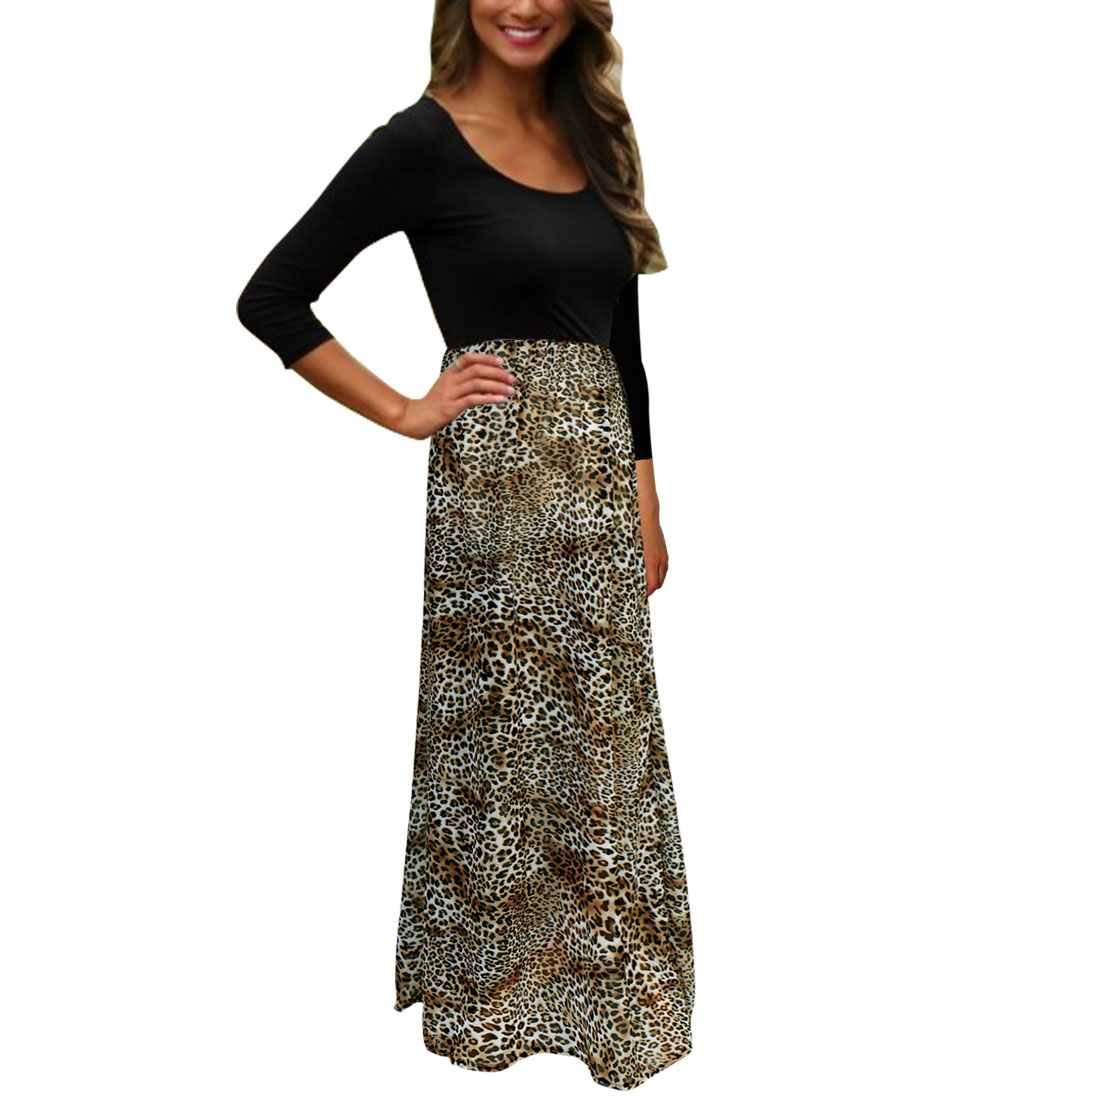 Women's Leopard Print Chiffon Panel Long Sleeves Maxi Dress Black (Size L / 12)